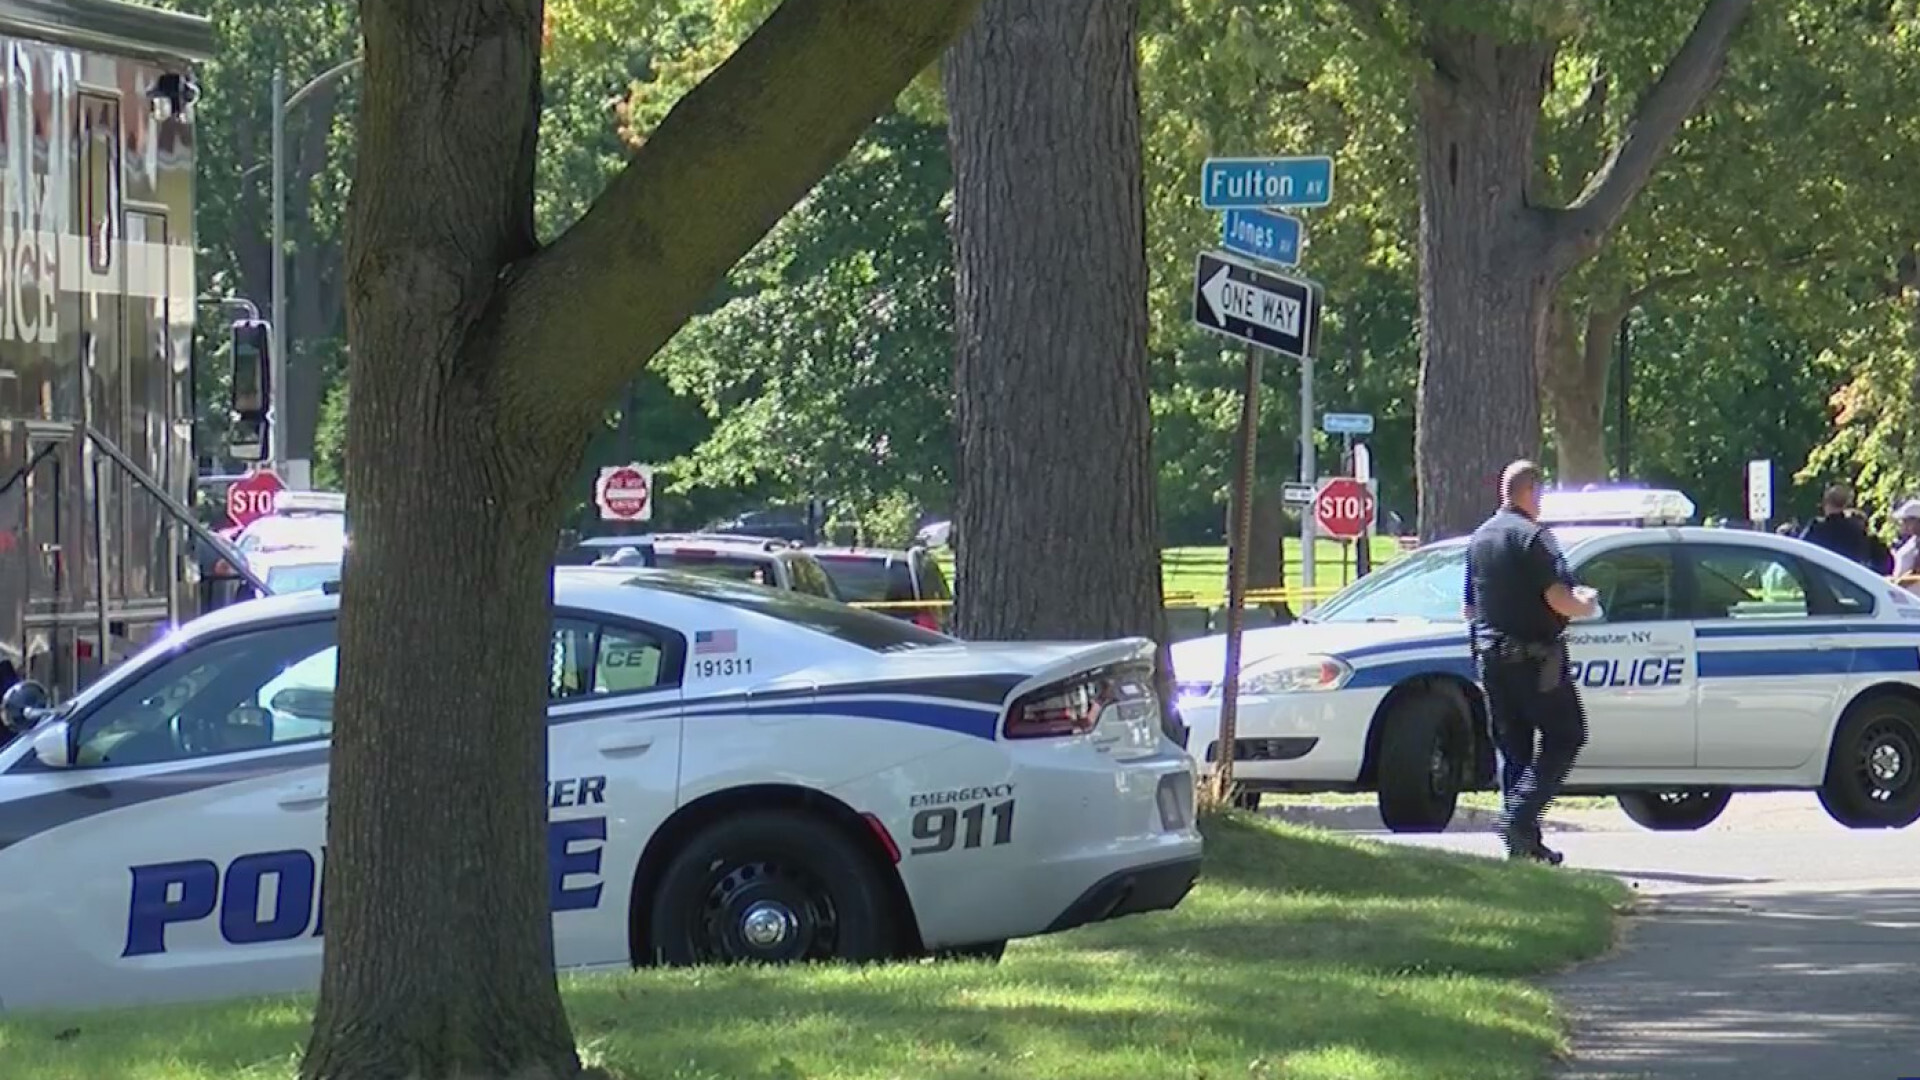 Rochester Man Arrested After Investigation In Fatal Shooting Of 19 Year Old On Fulton Avenue Rochesterfirst